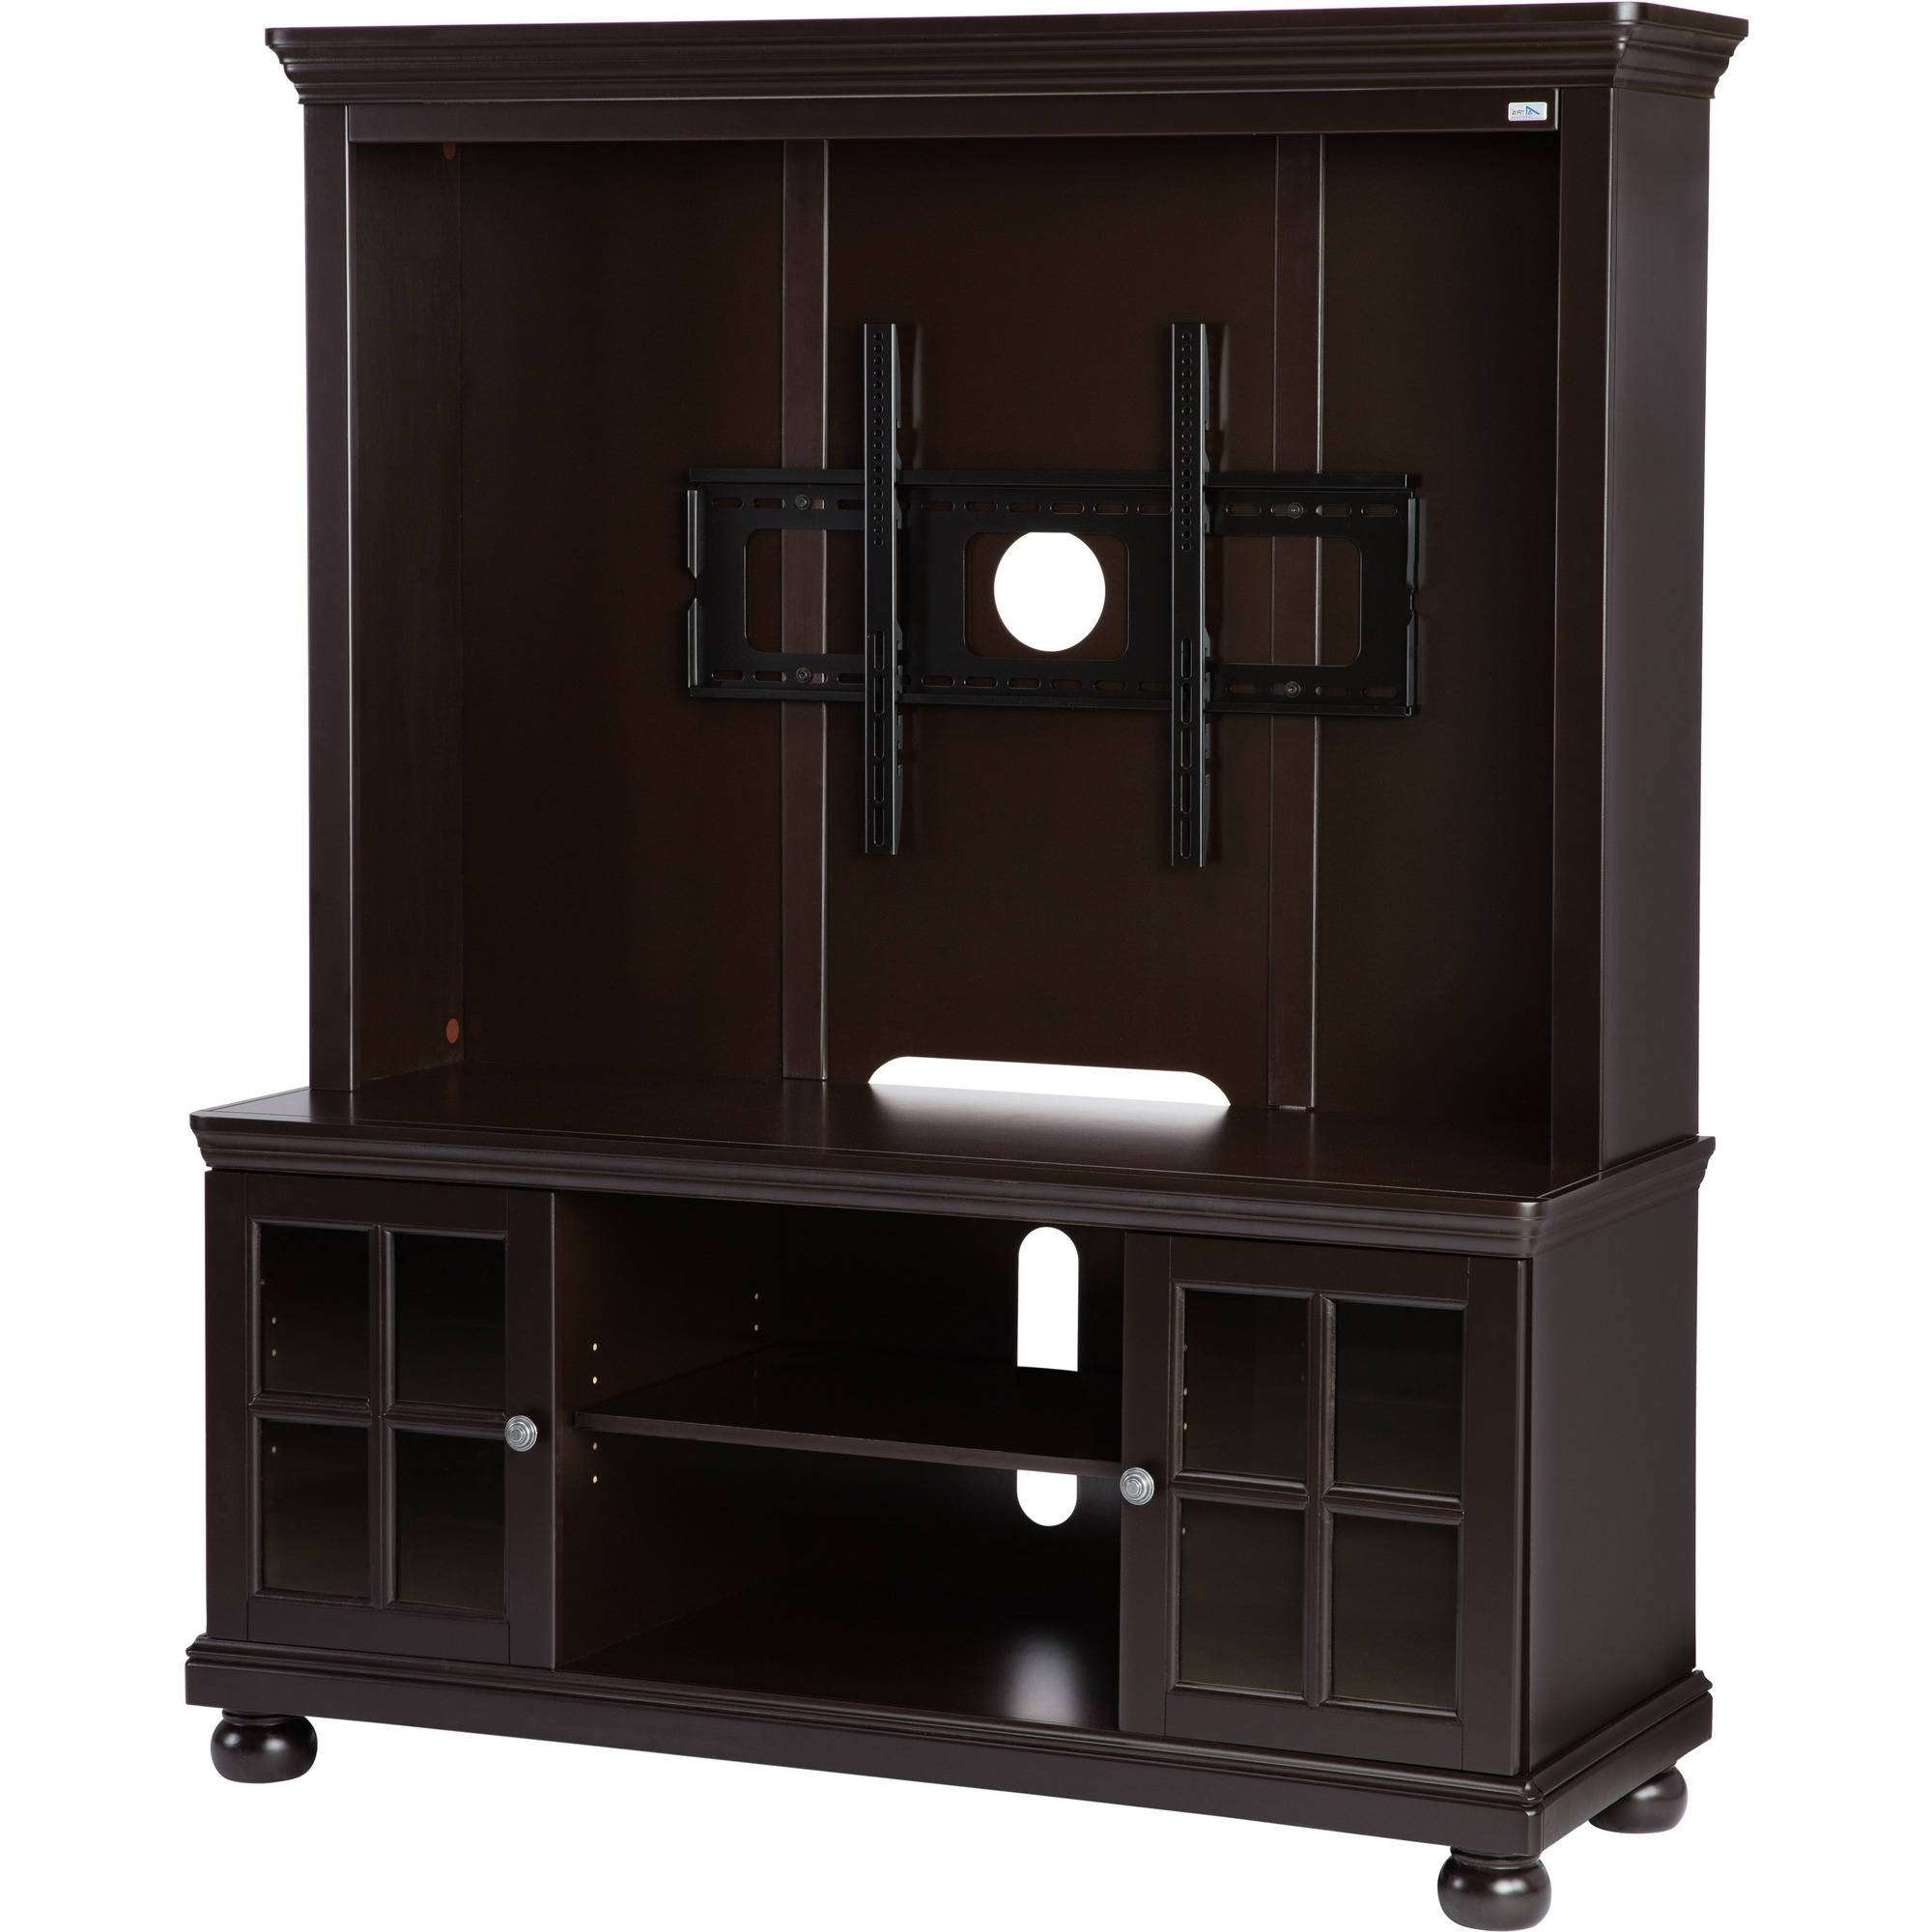 Amazing Expresso Tv Stand 57 For Small Home Remodel Ideas With In Expresso Tv Stands (View 6 of 15)